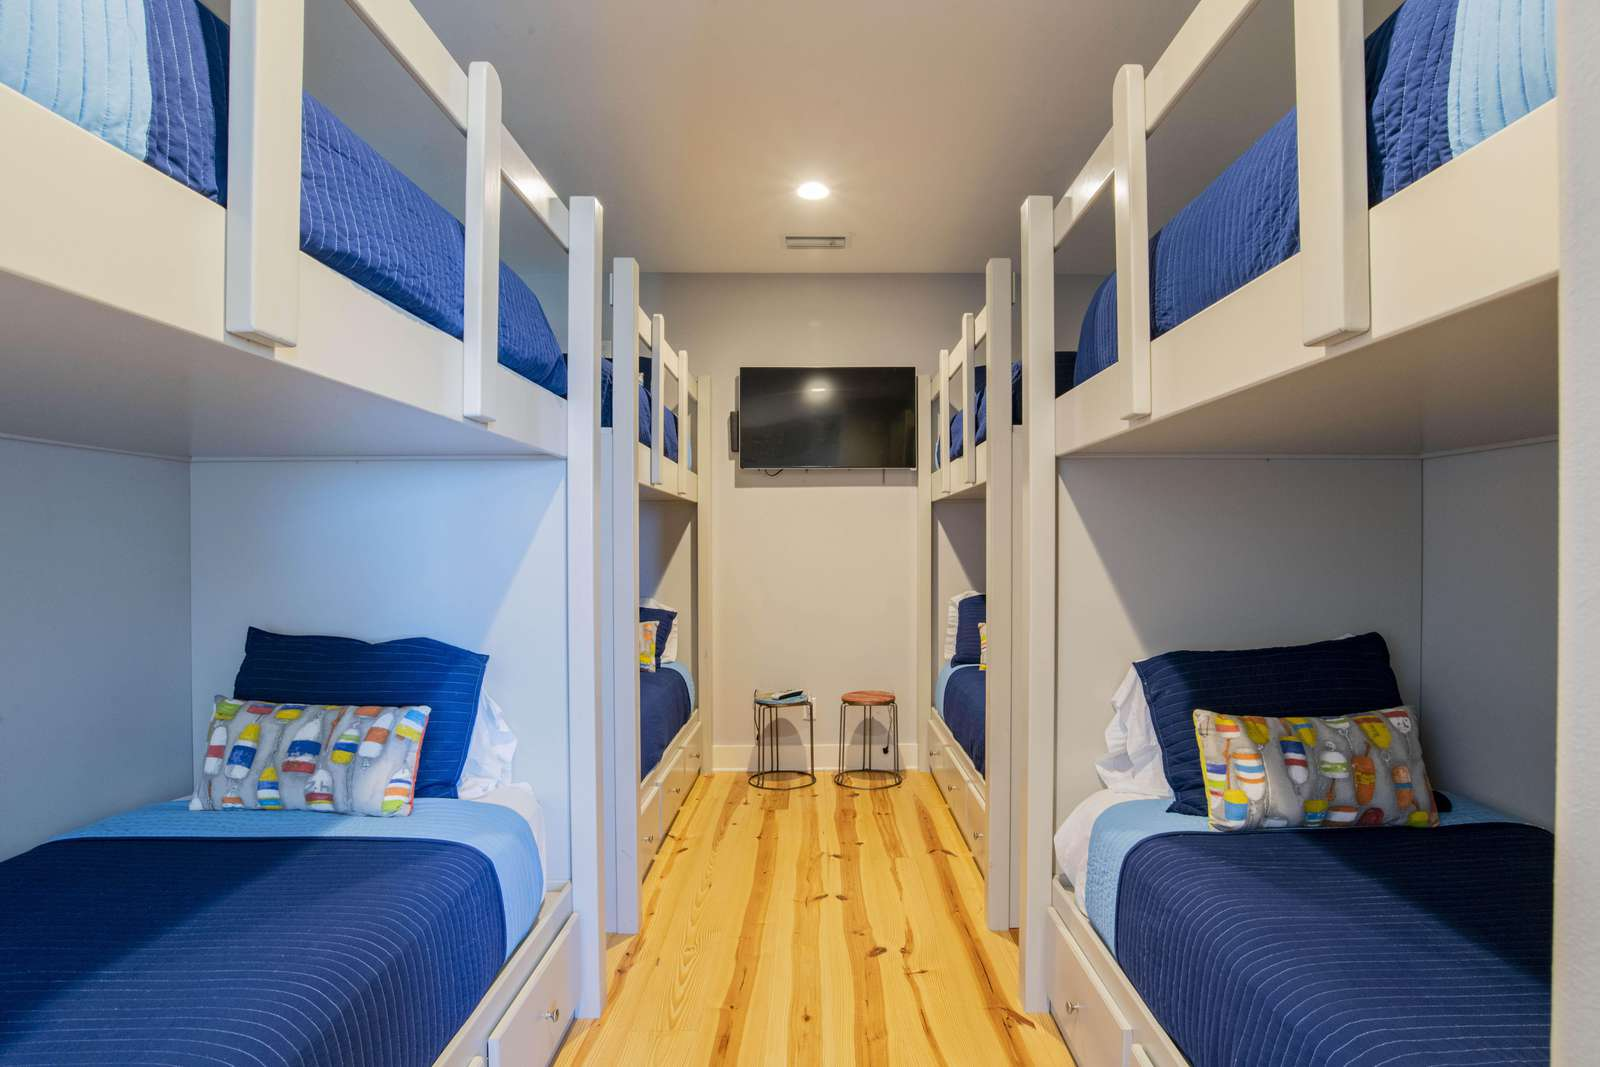 8 Twin XL beds. Can accommodate children or adults.